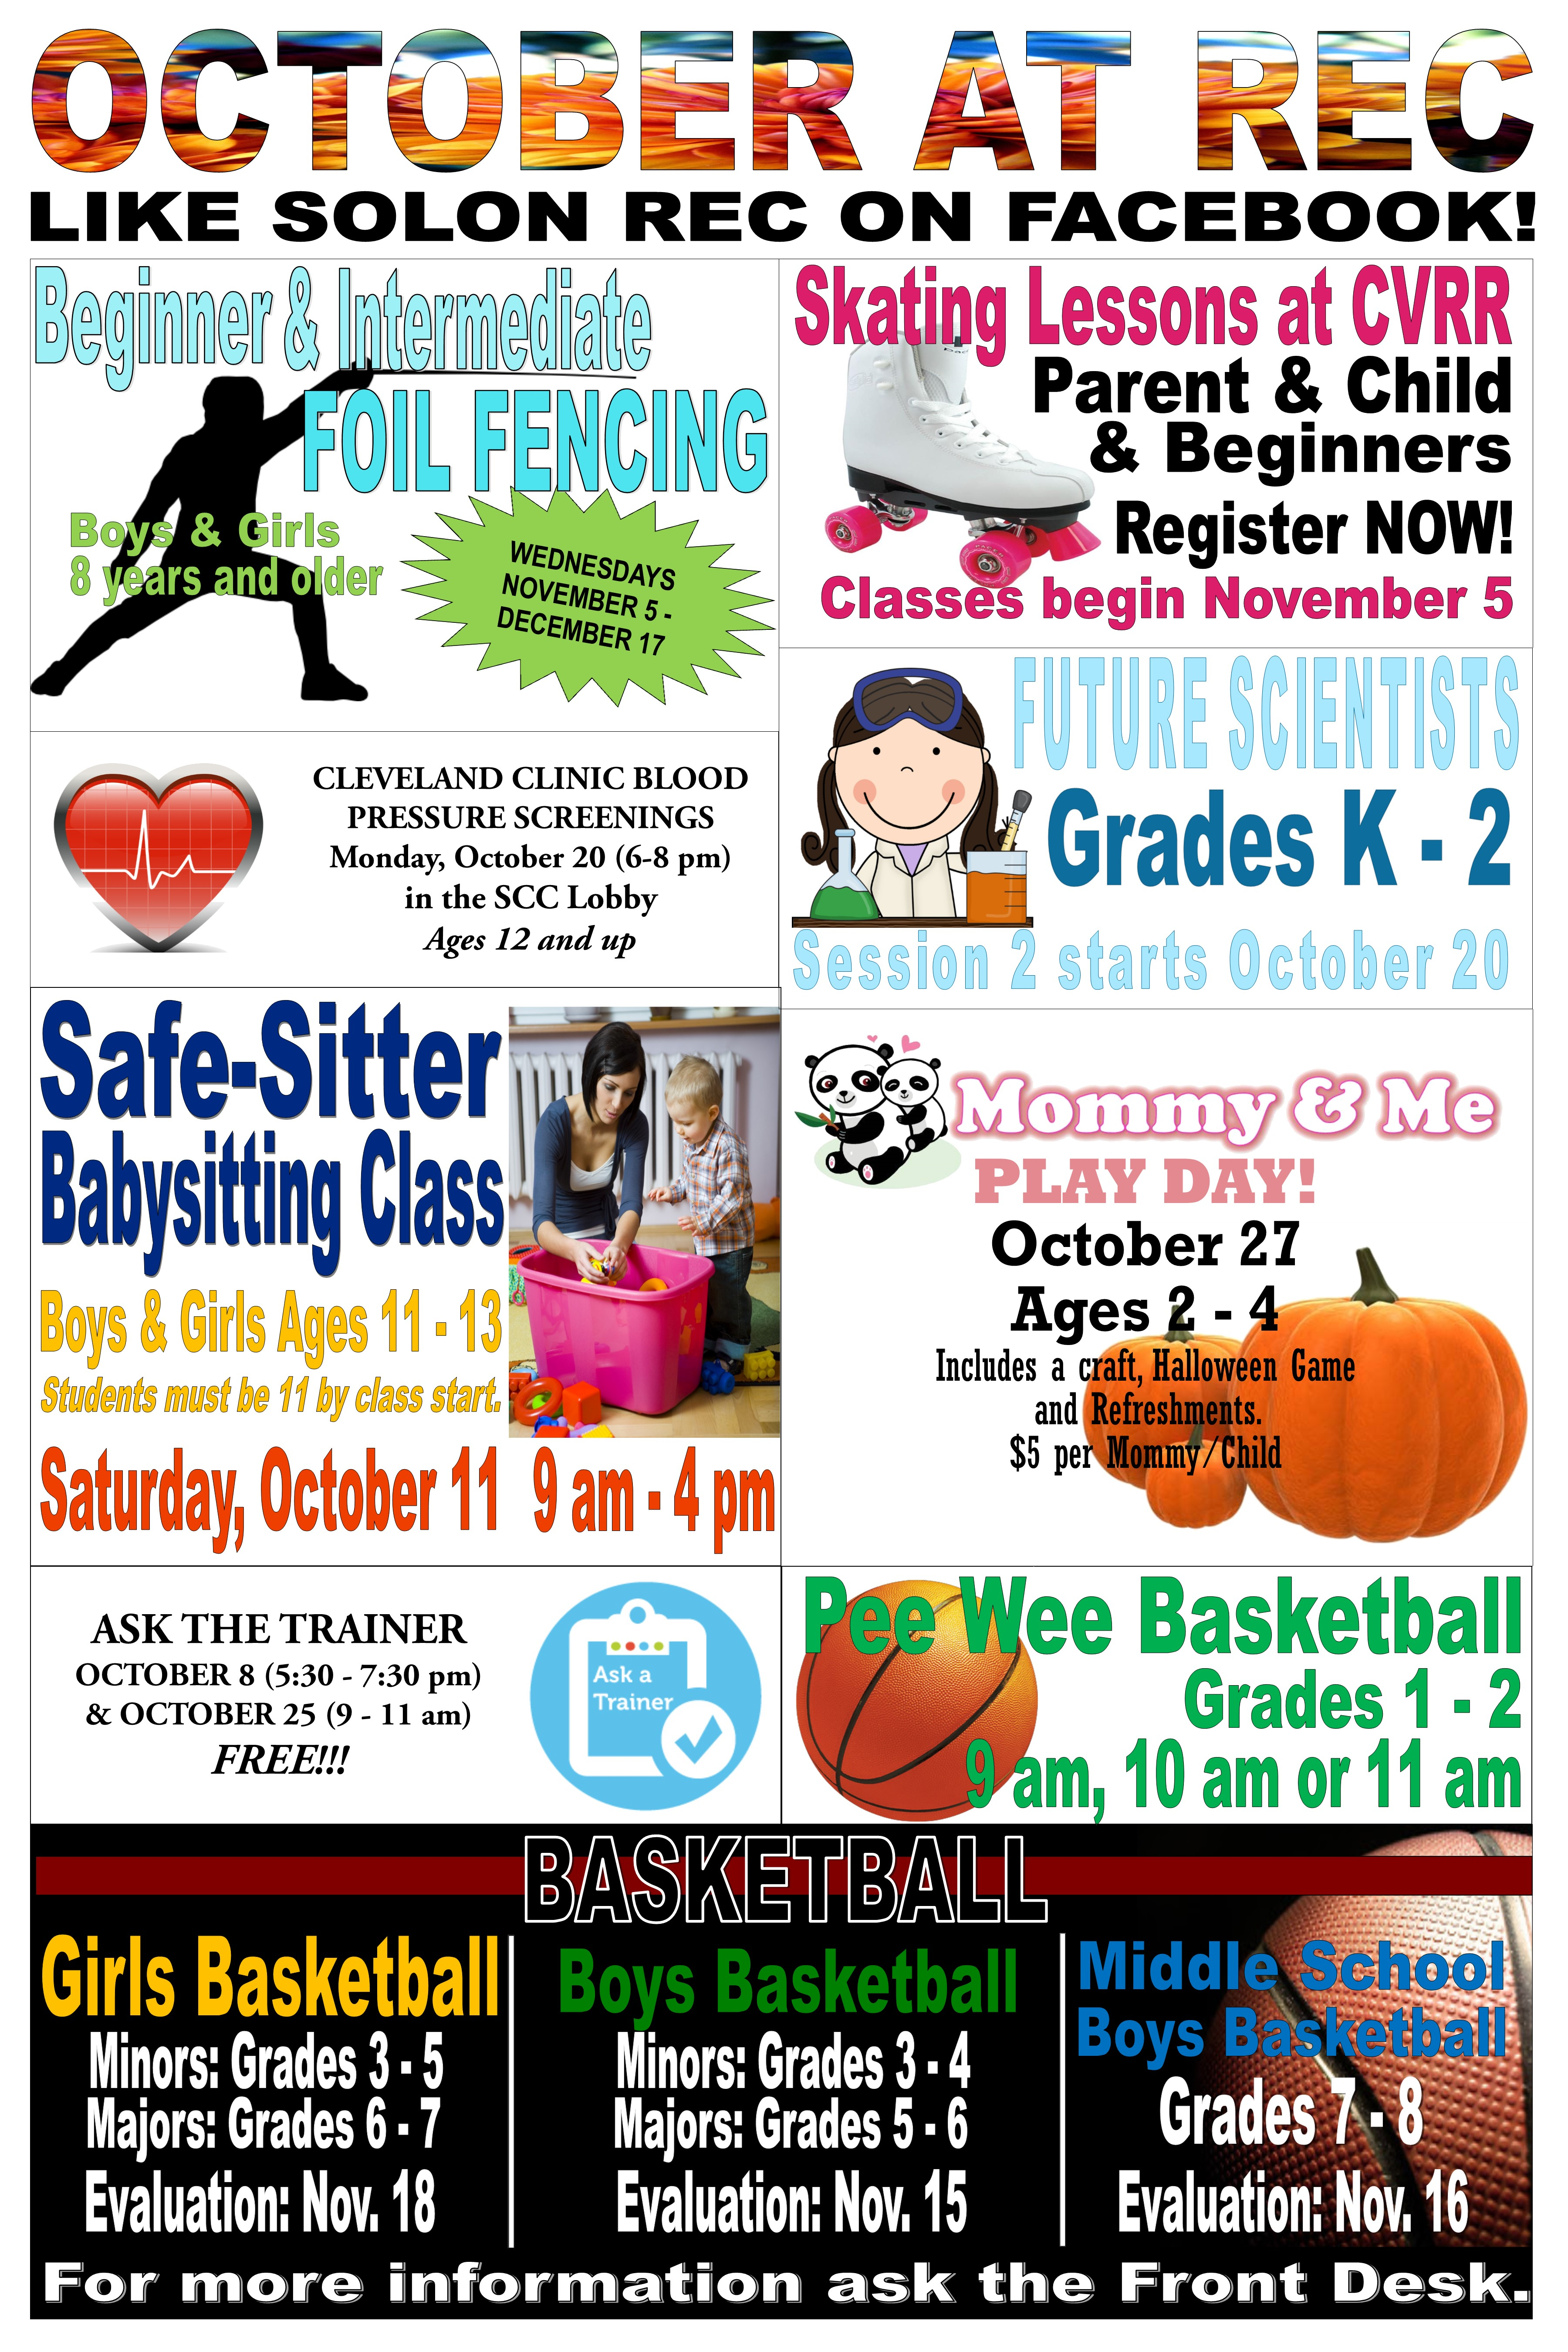 Upcoming Events Poster OCTOBER rec.jpg